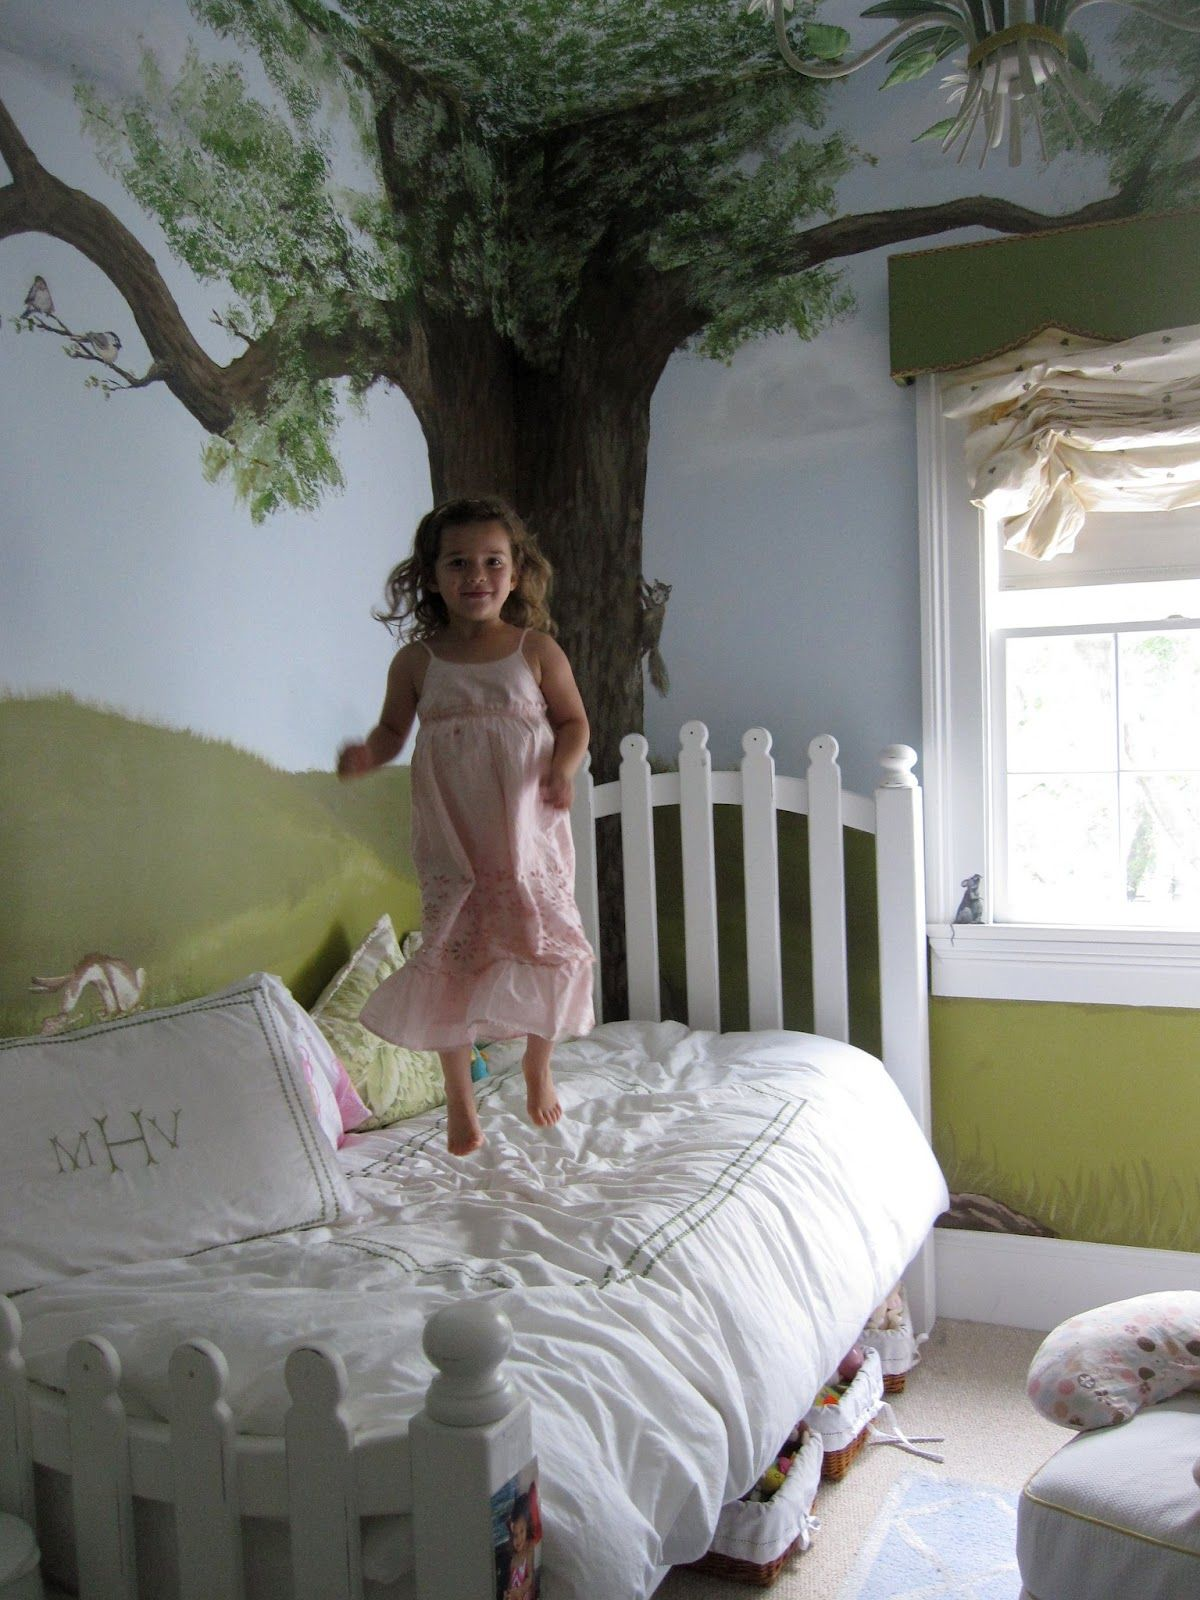 Children S Room Mural With Tree Kids Room Murals